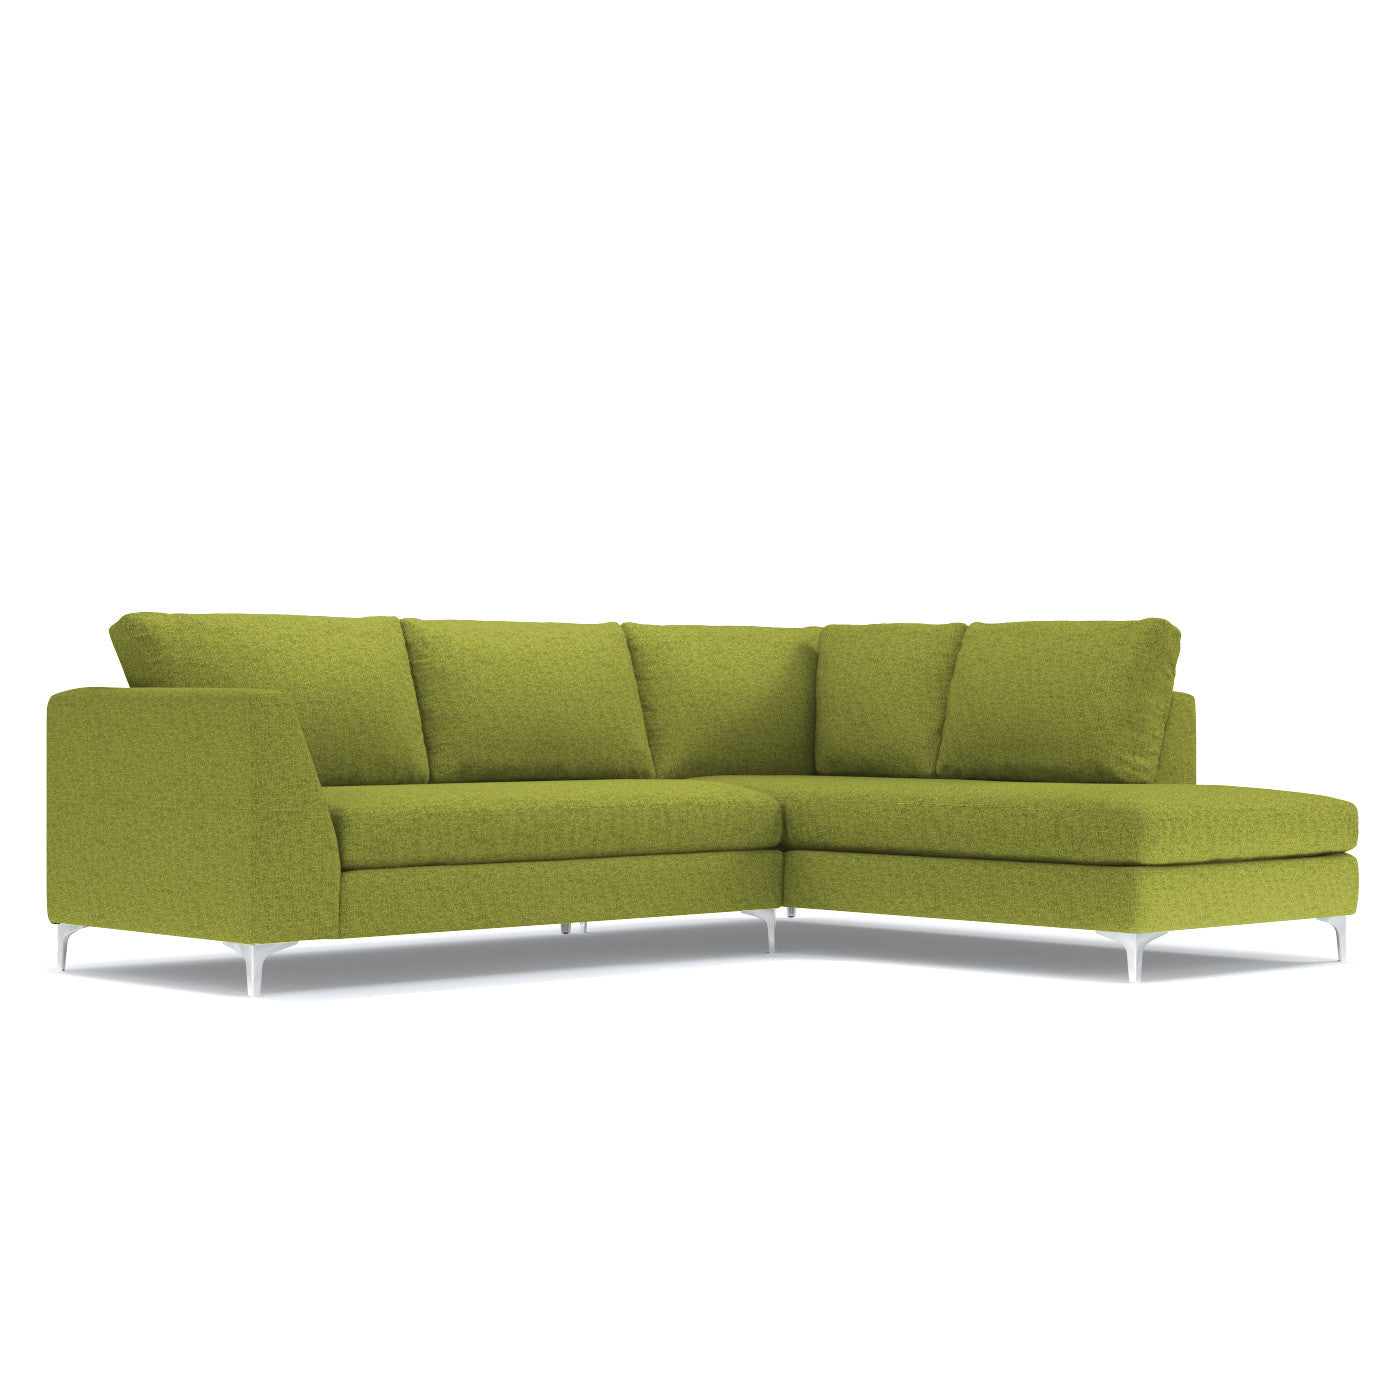 Mulholland 2pc Sectional Sofa